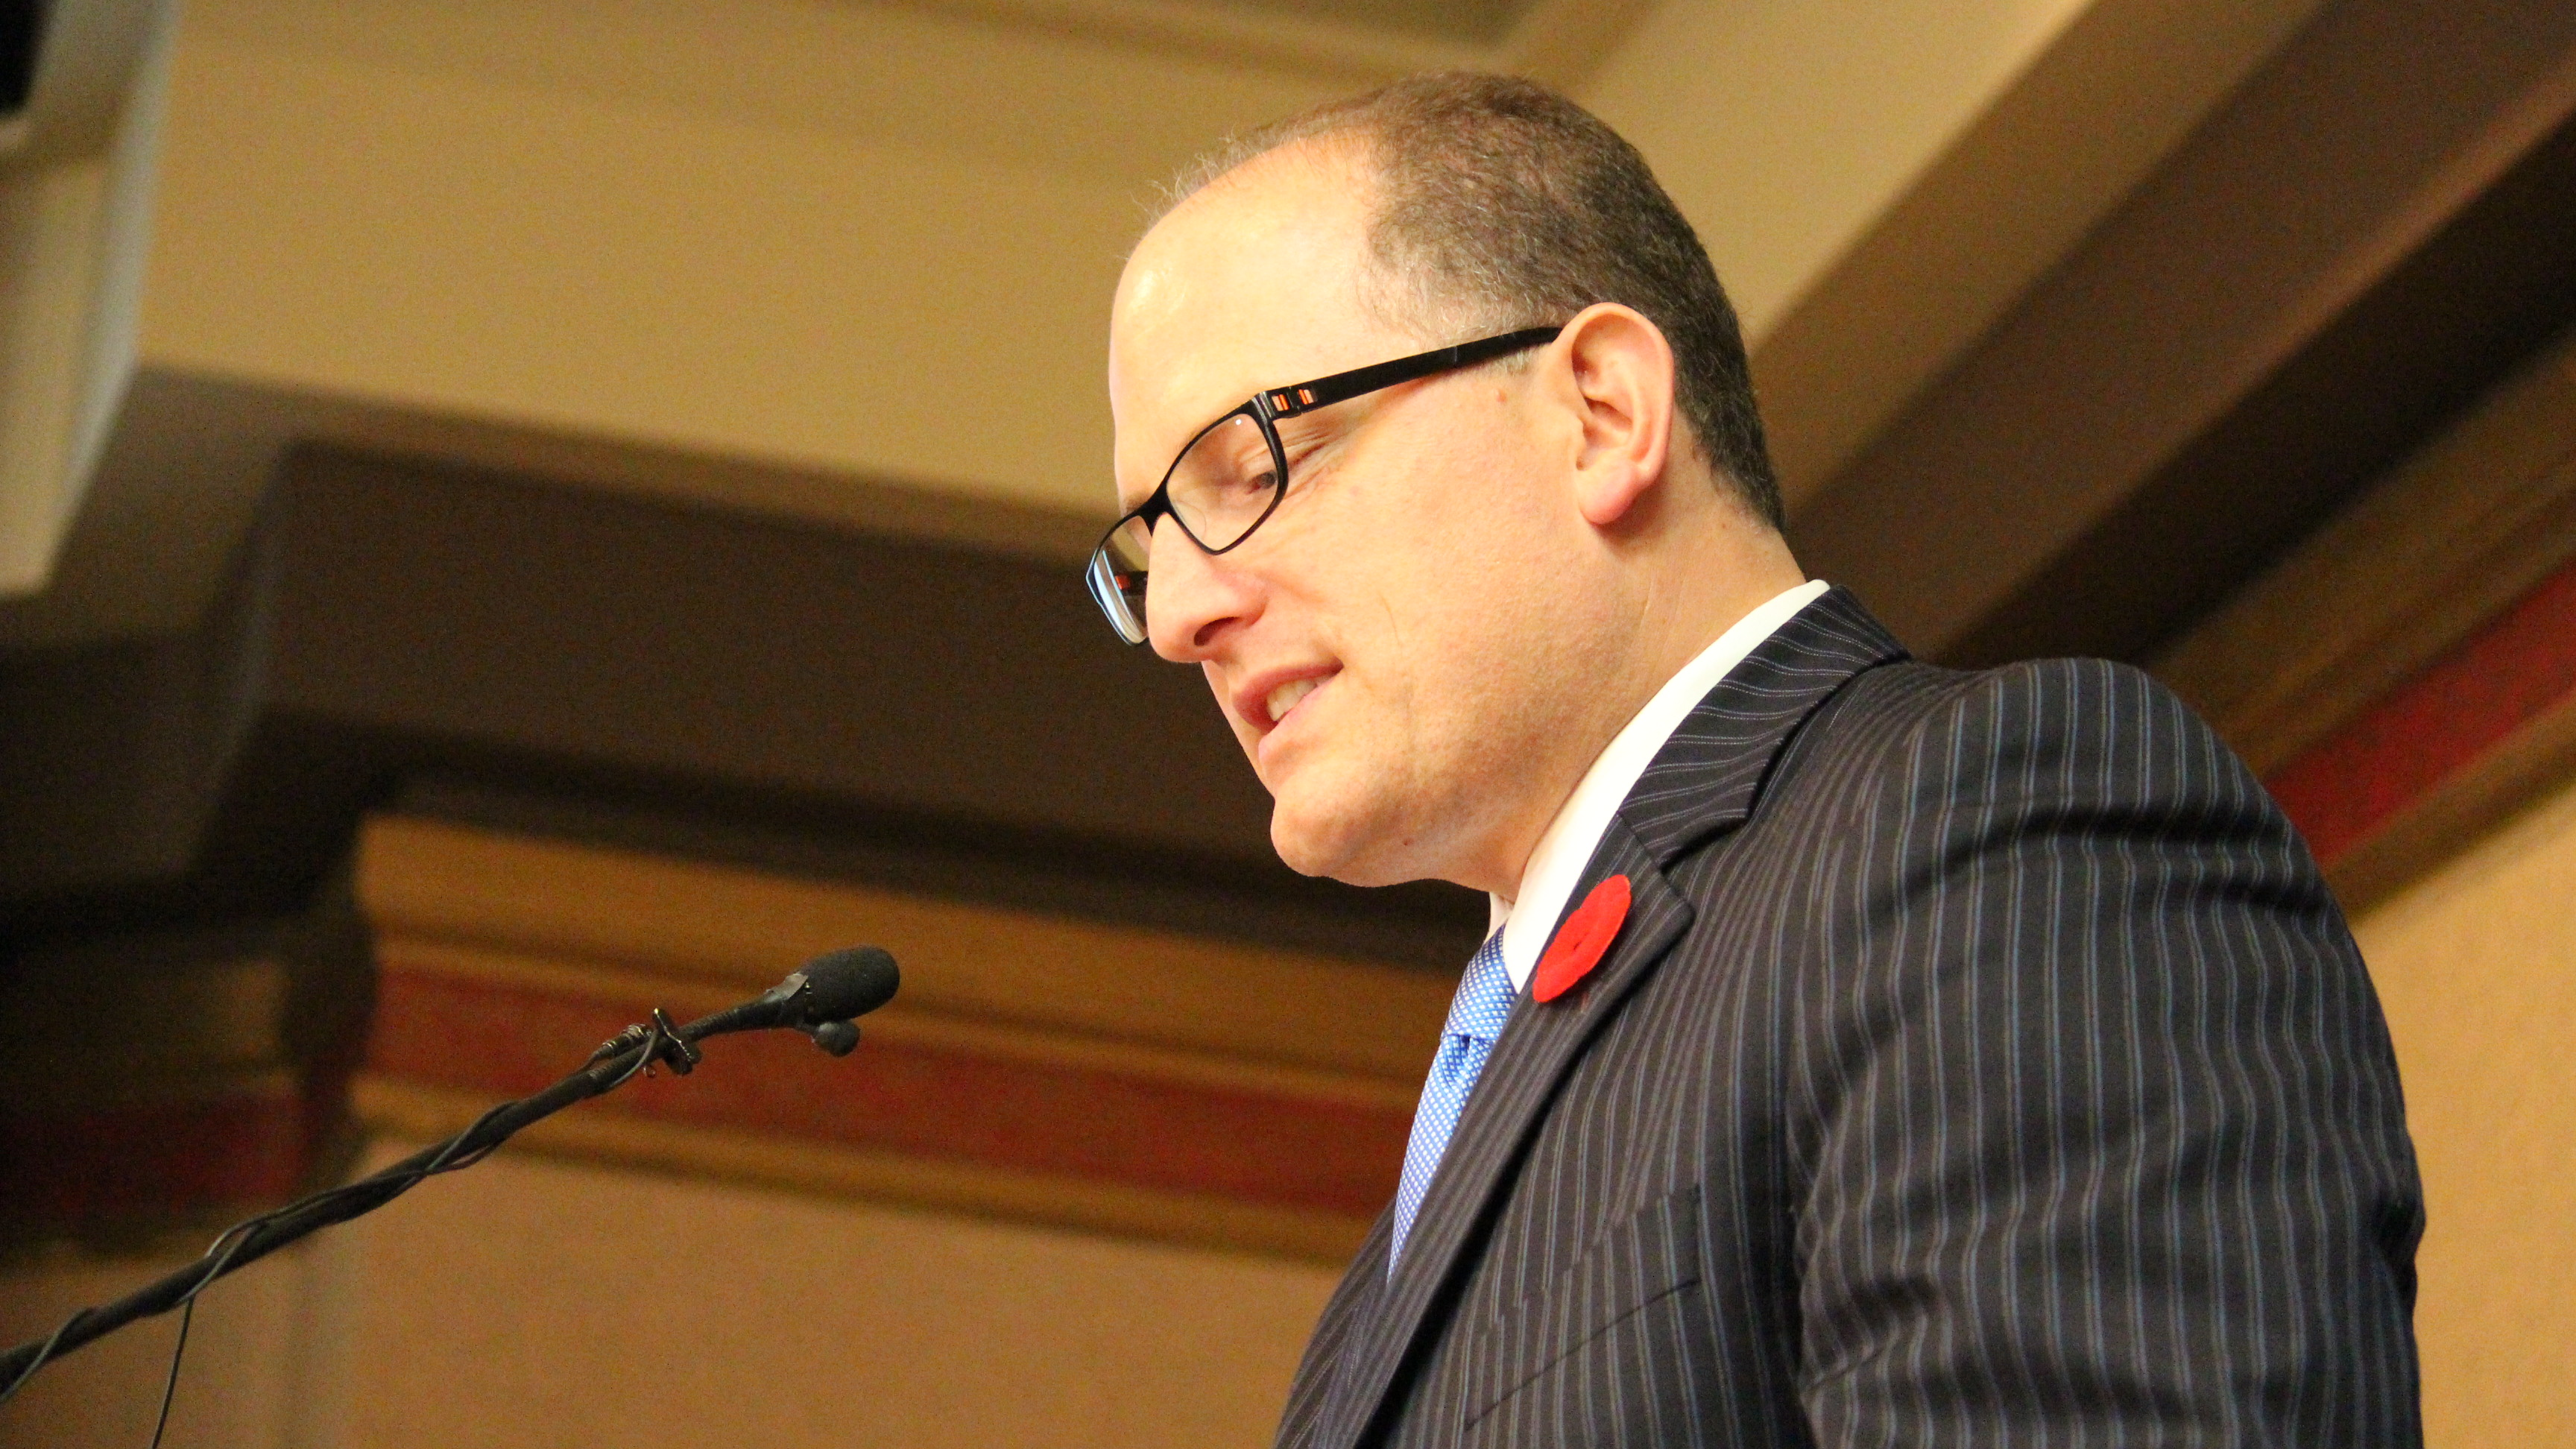 Mayor-elect Drew Dilkens speaks to supporters at the Caboto Club, October 27 2014. (Photo by Maureen Revait.)